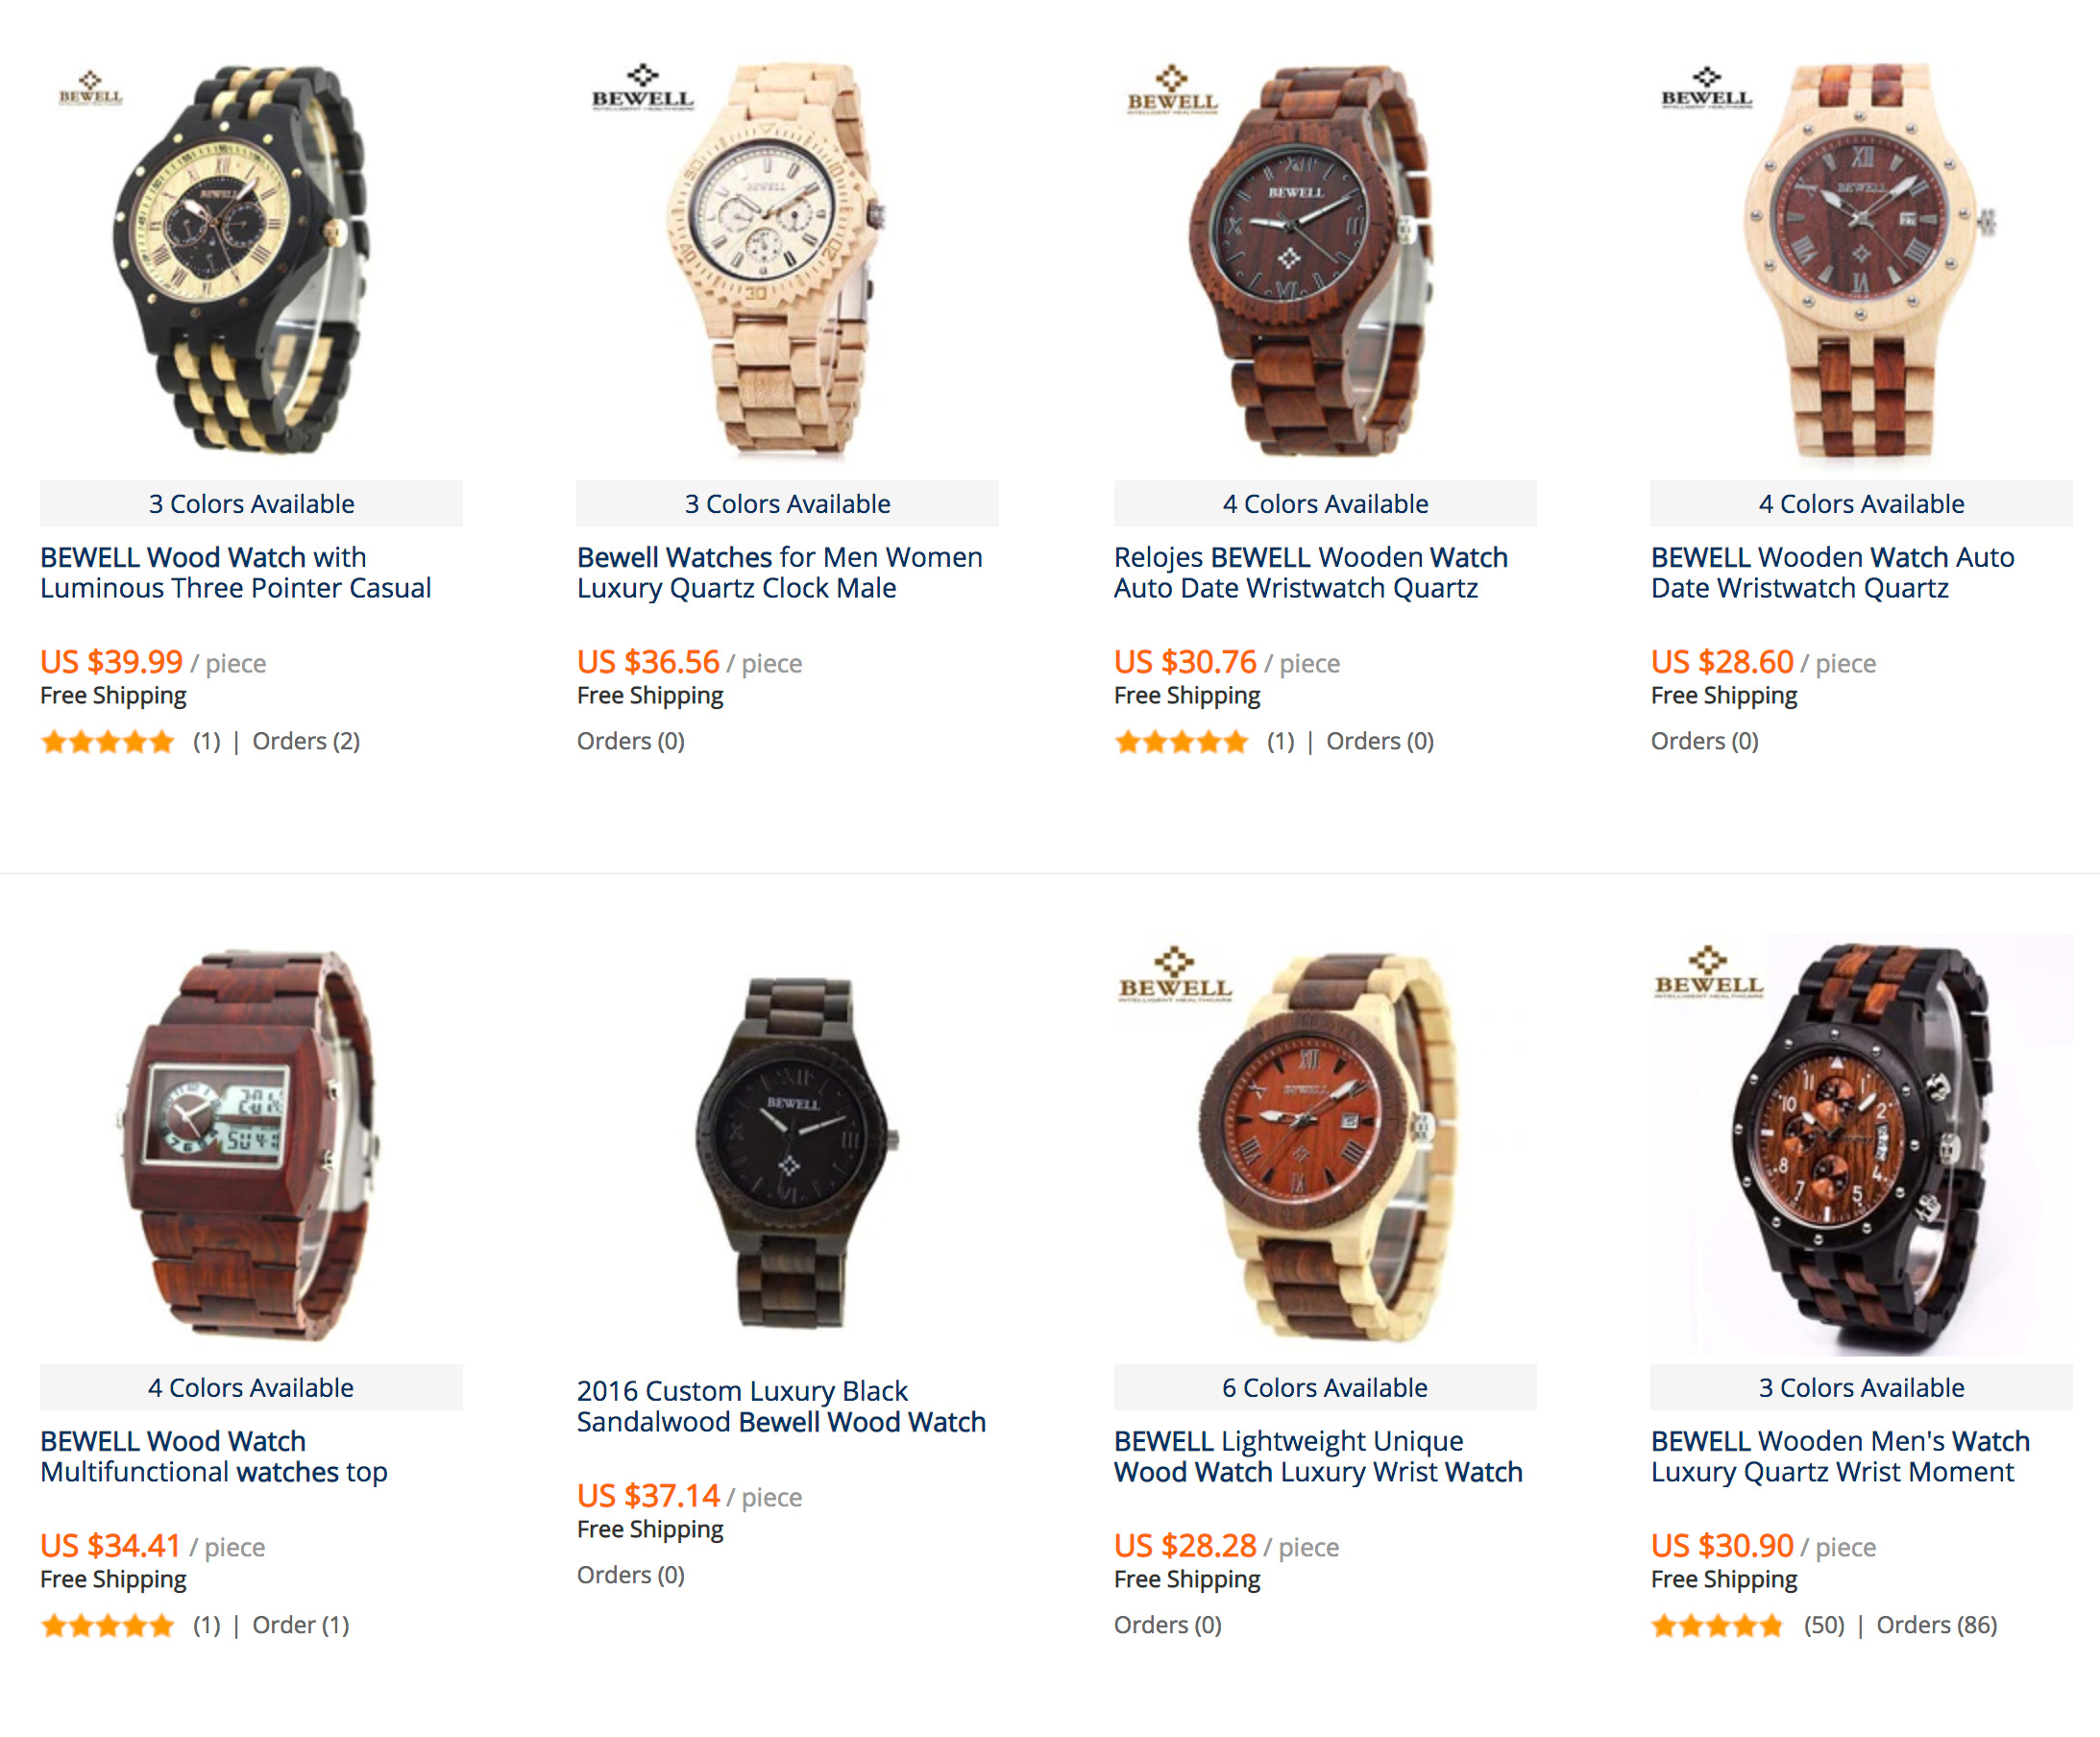 bewell wooden watches for men review